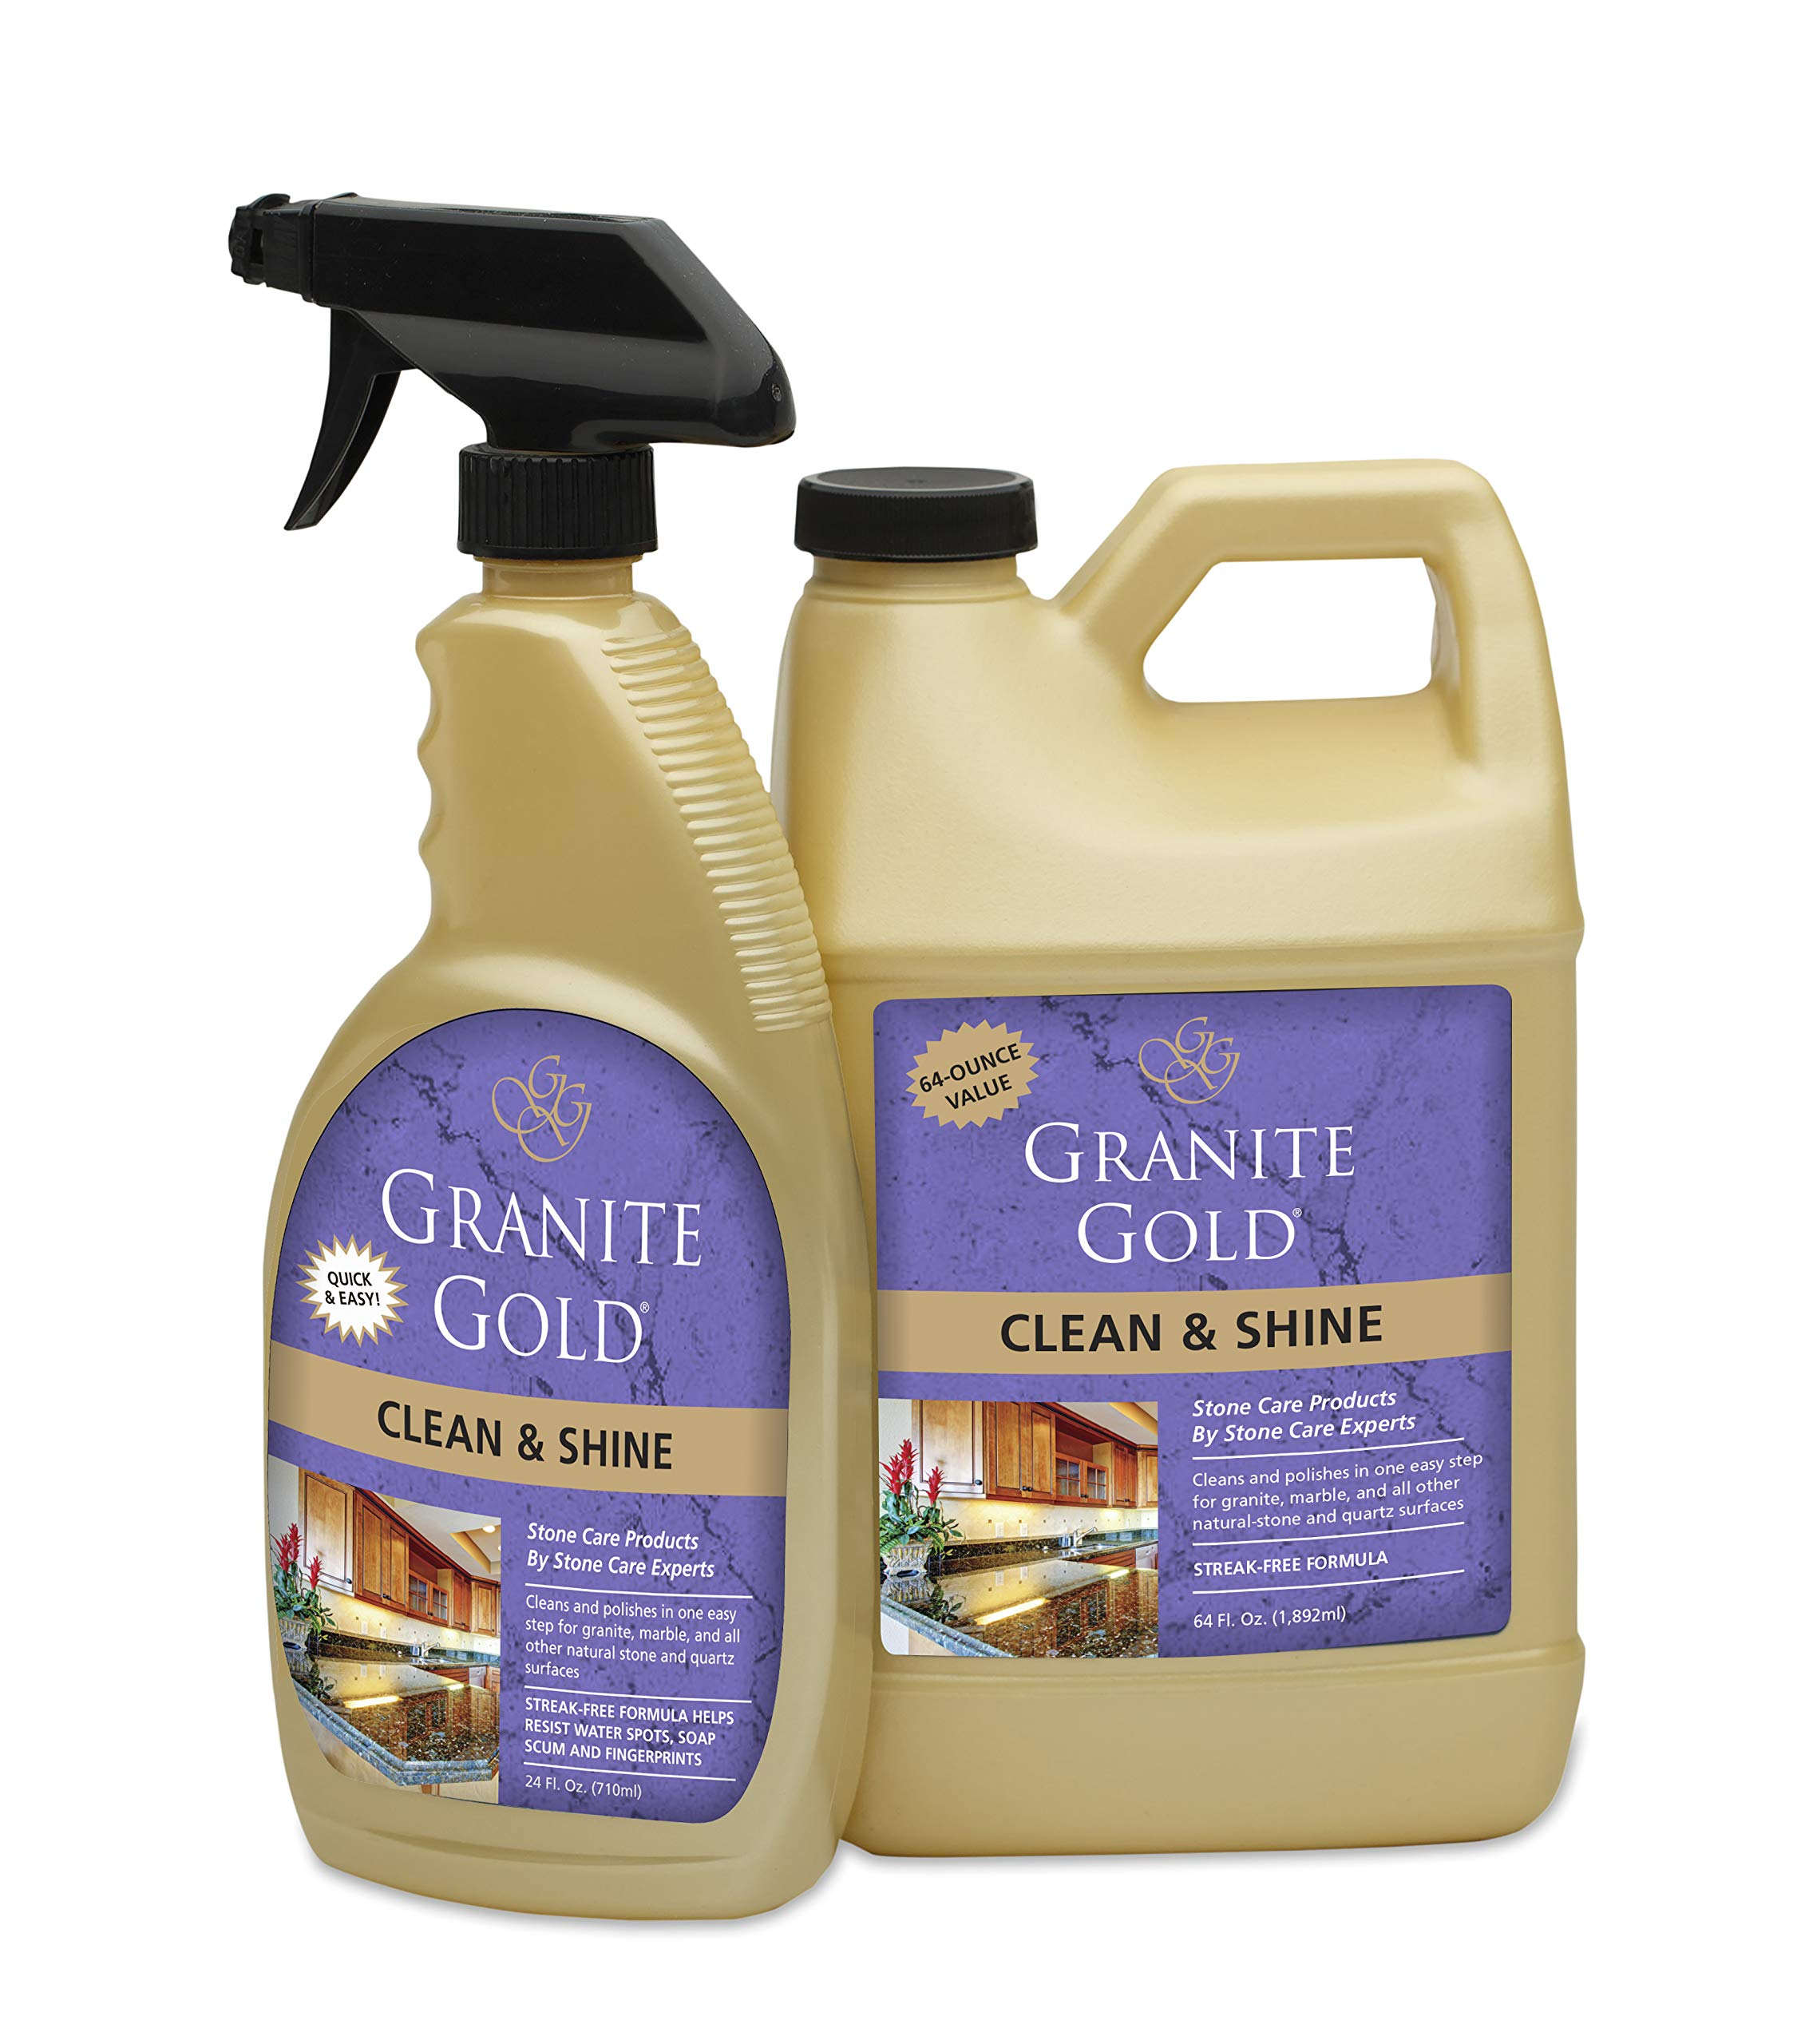 Granite Gold Clean and Shine Spray and Refill Value Pack - Polishes and Deep Cleans Natural Stone Surfaces, Made in The USA